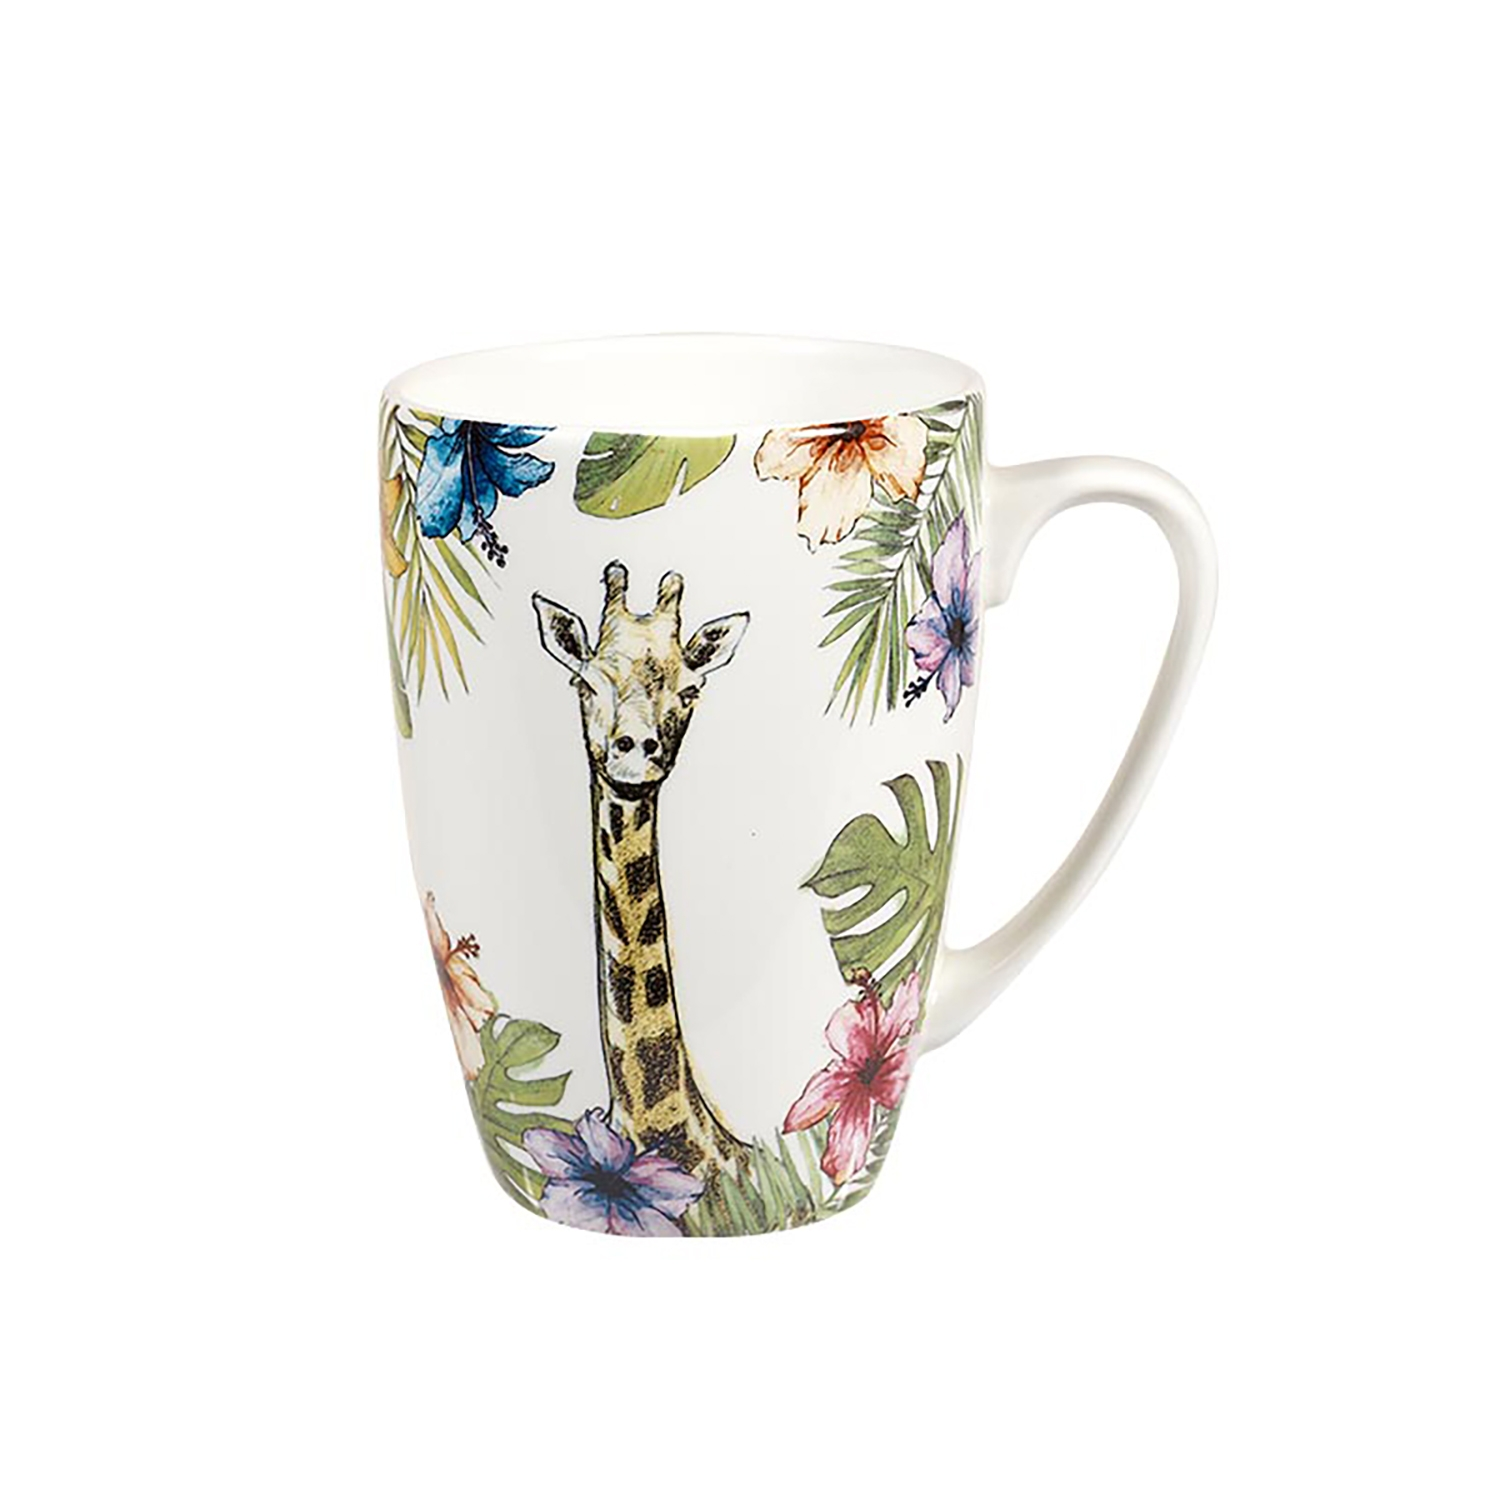 Image of Churchill China, Giraffe Mug, 275ml, Asstd